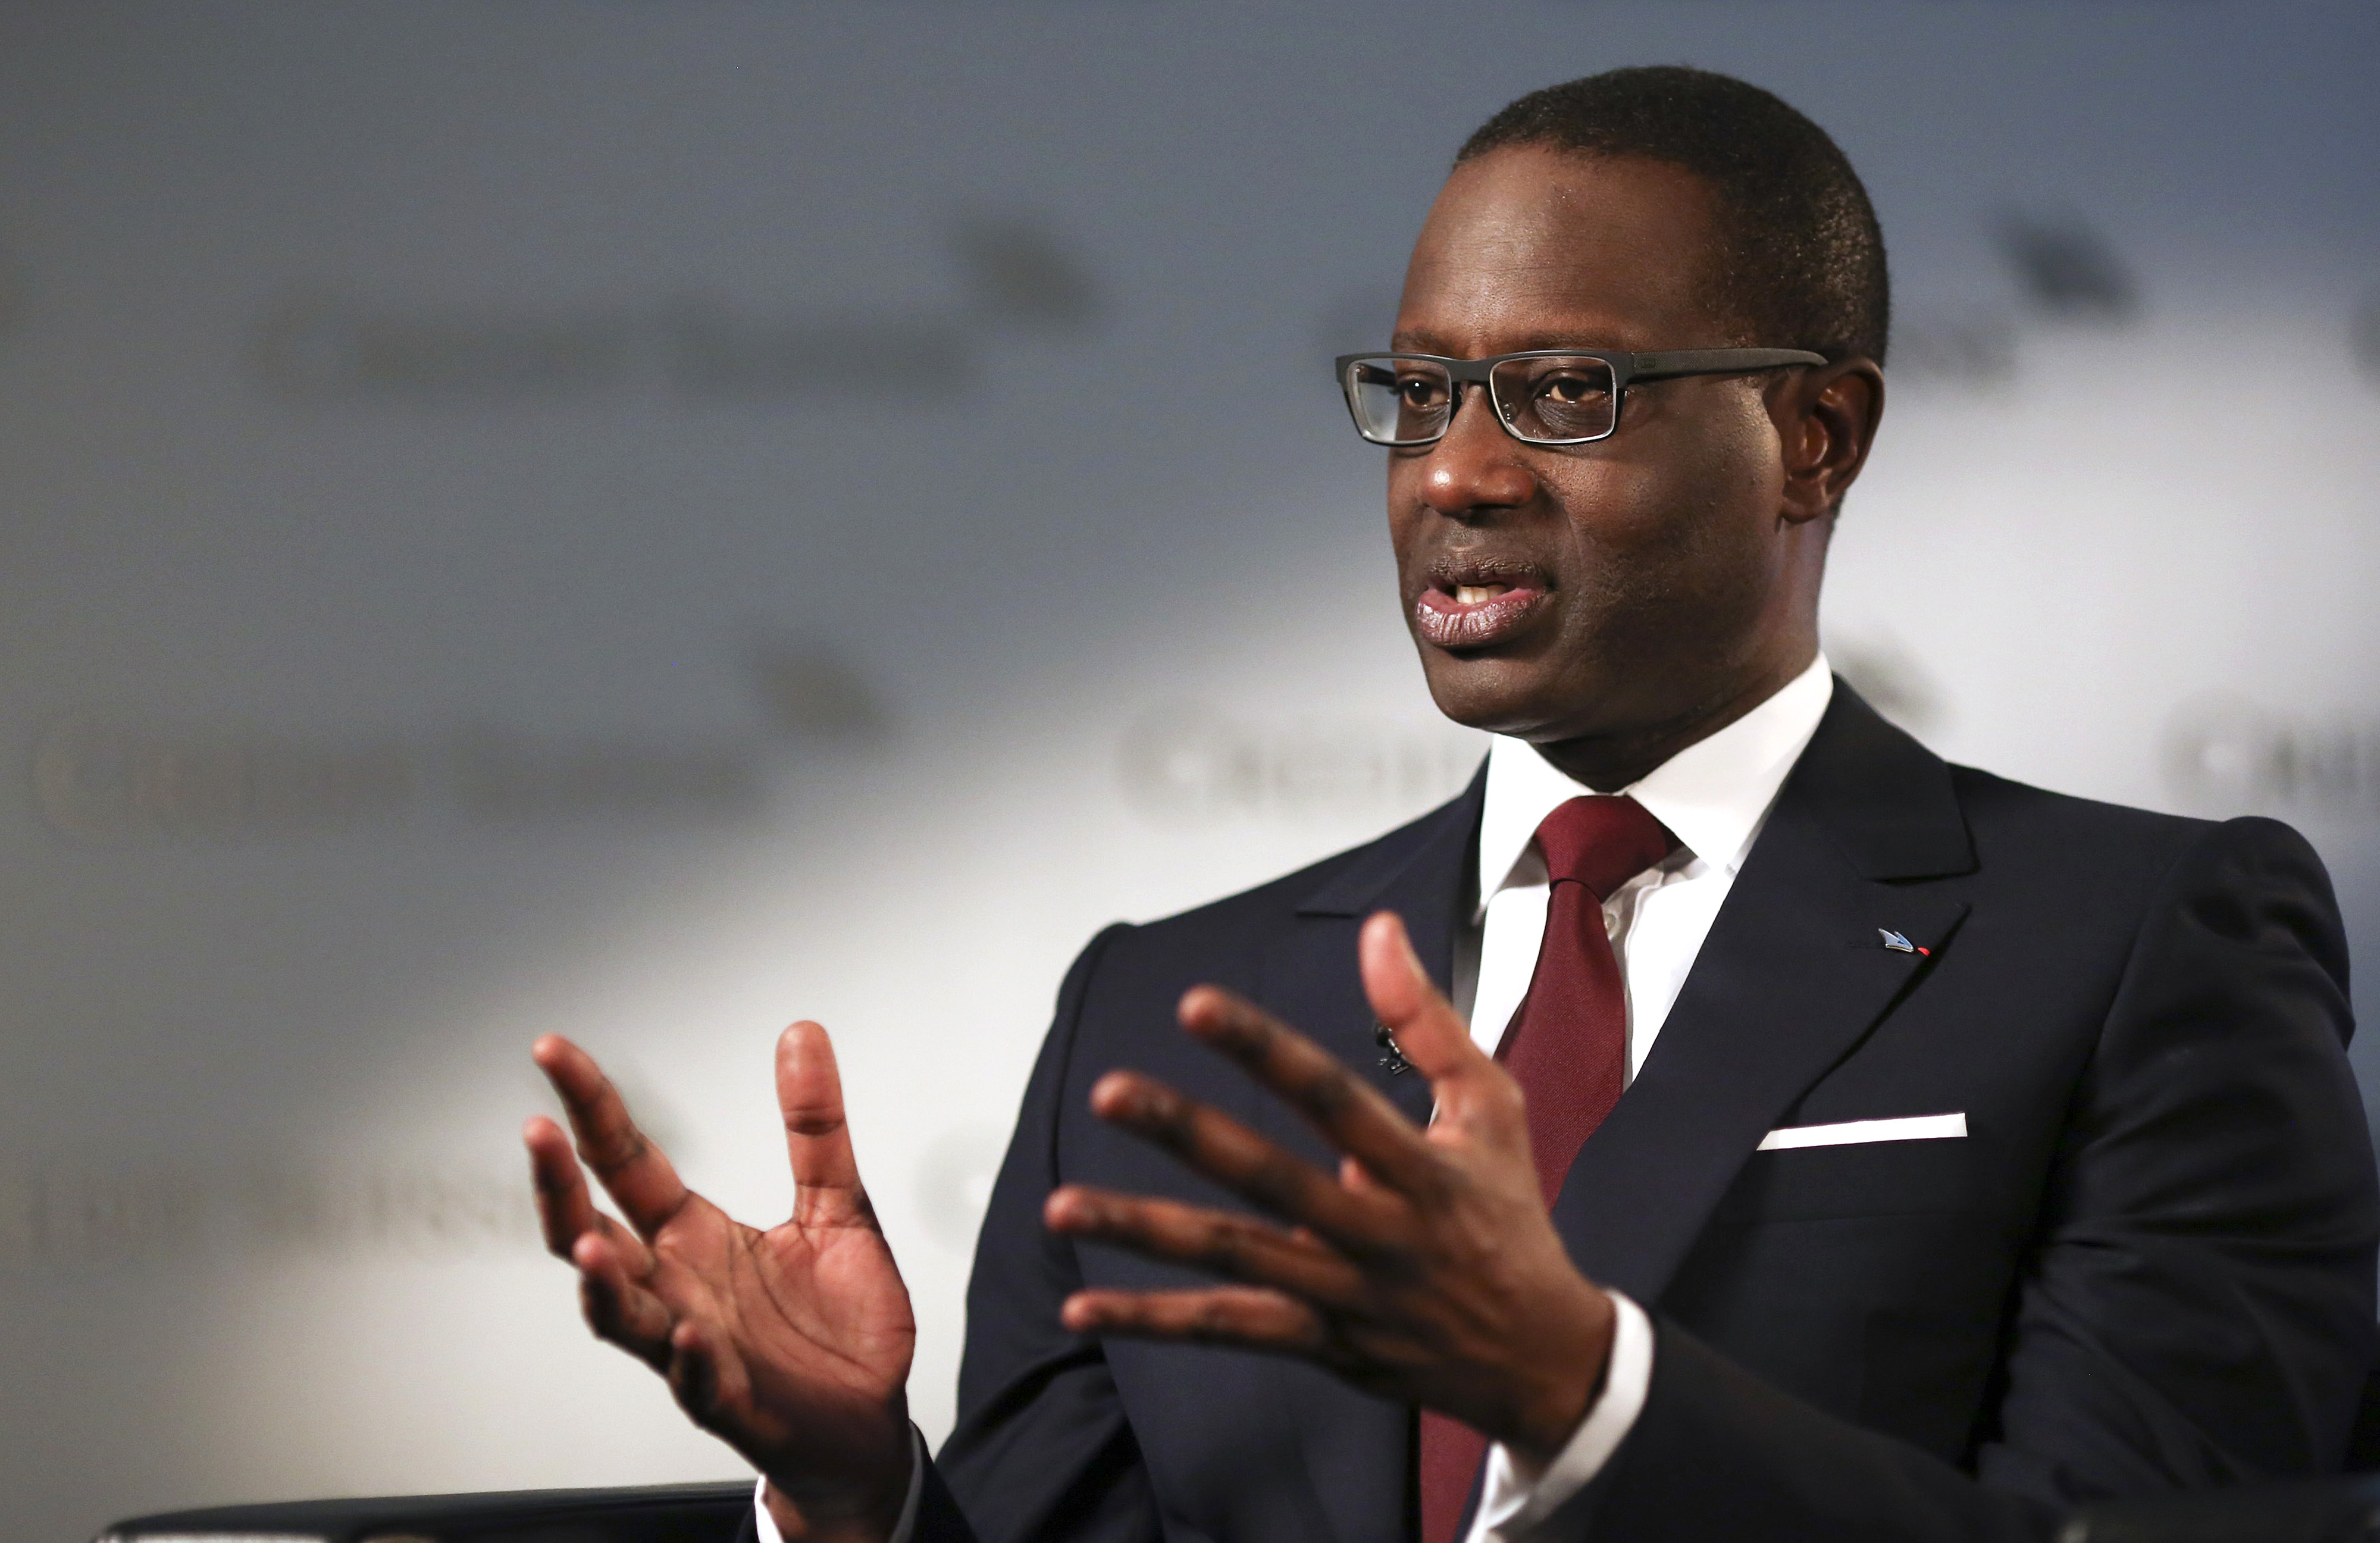 Tidjane Thiam, chief executive officer for Credit Suisse Group AG, speaks during a Bloomberg Television interview at the banks headquarters in Zurich, Switzerland, on Thursday, July 23, 2015. The bank posted a profit of 1.05 billion francs ($1.1 billion), beating many analysts' predictions. Photographer: Simon Dawson/Bloomberg *** Local Caption *** Tidjane Thiam